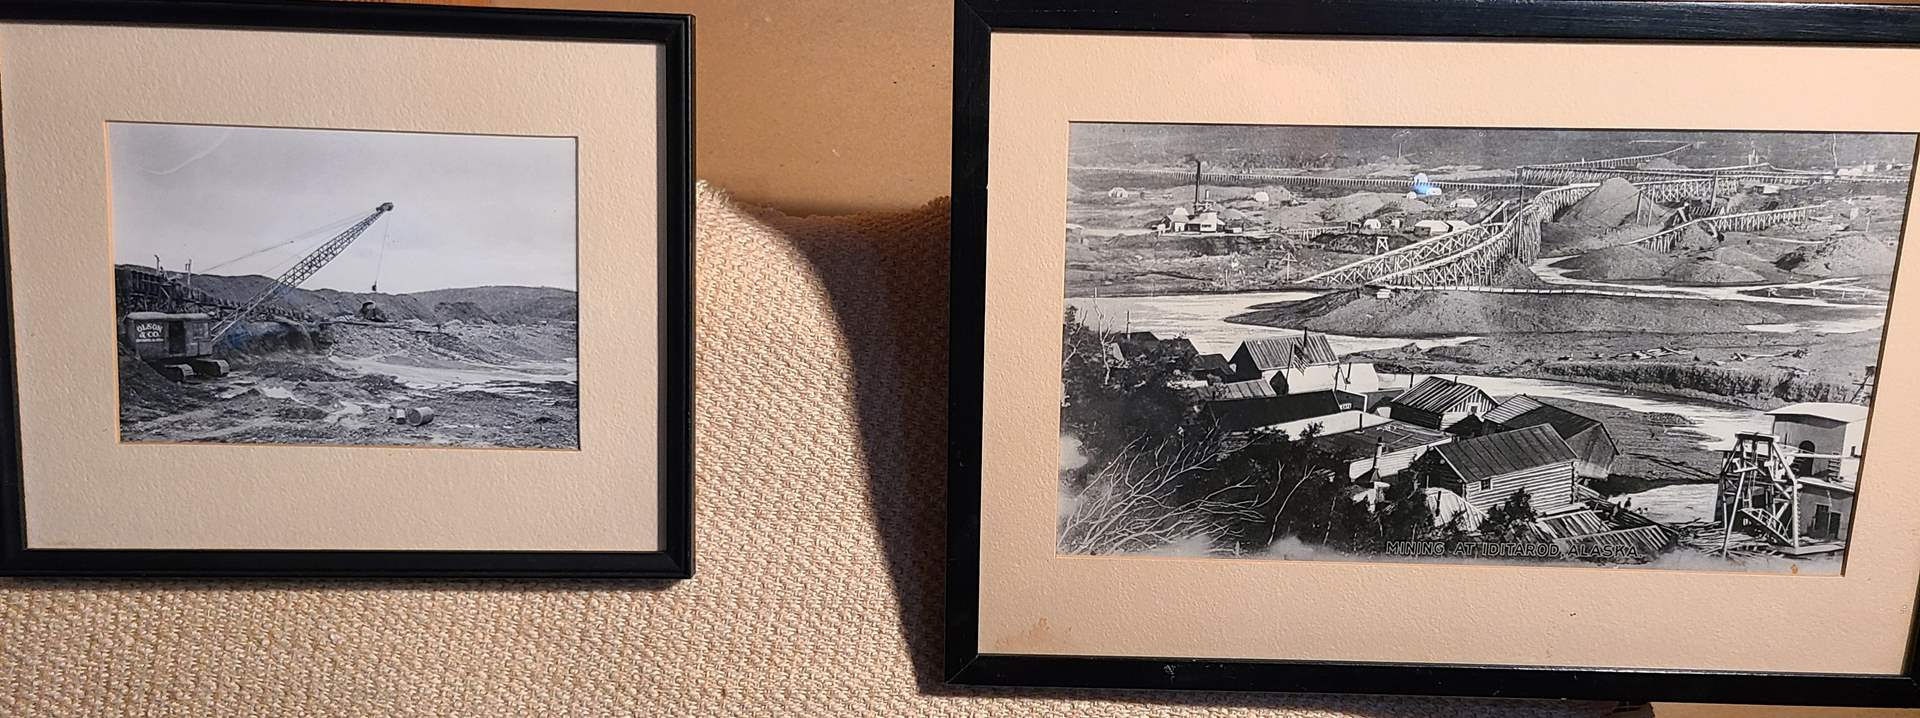 Lot # 159 - 2 Mining Scenes * Discovery Ottercreek 1914 * Iditarod Alaska early 1900's * Framed with Glass *  (main image)